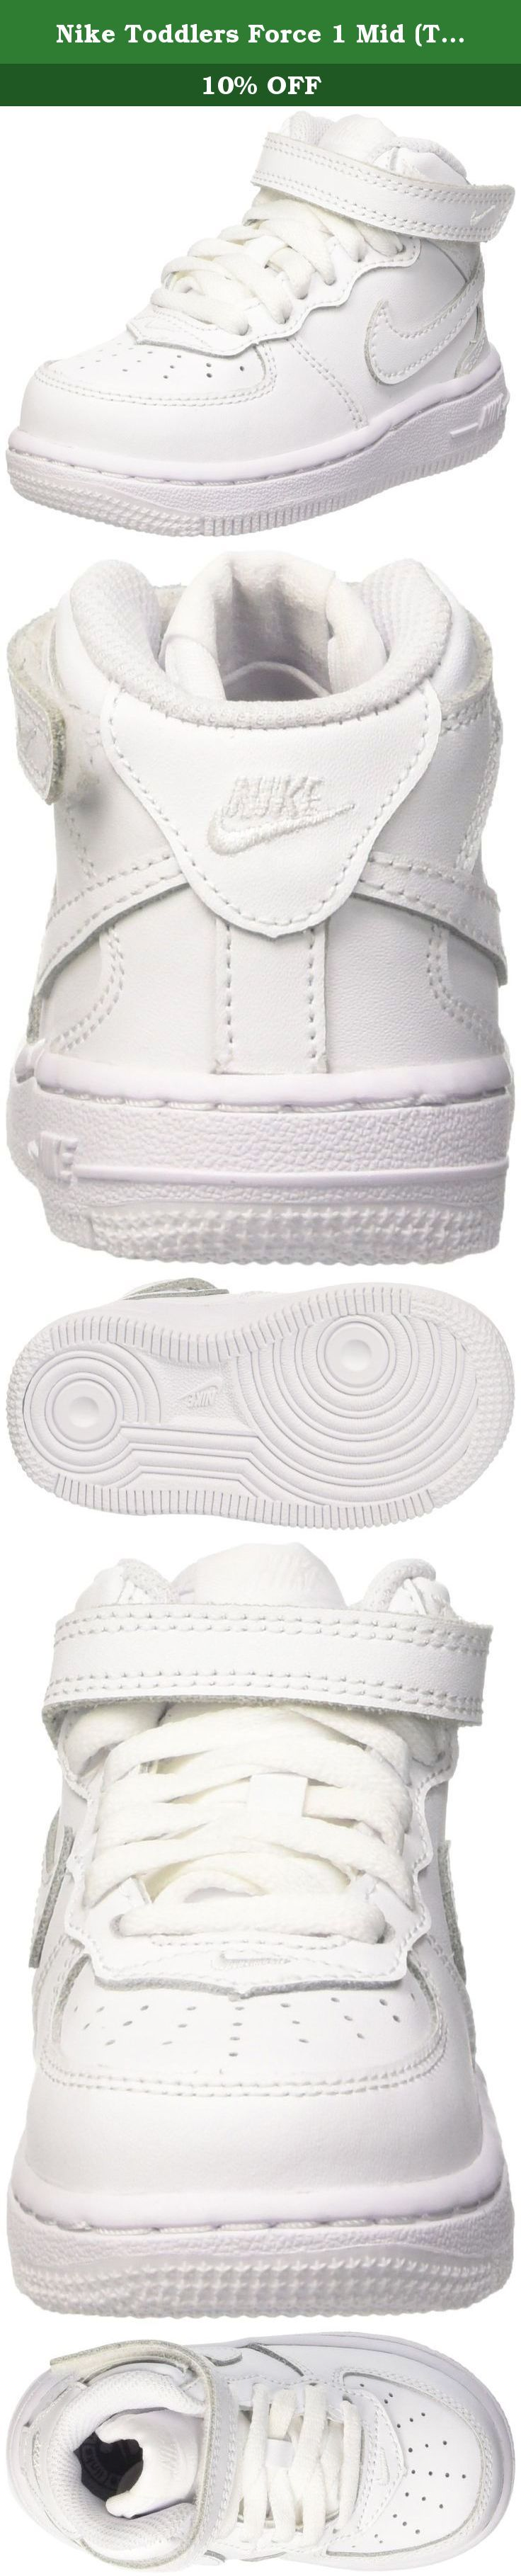 Nike Toddlers Force 1 Mid (TD) White/White/White Basketball Shoe 9 Infants US. Much like other Nike footwear icons, Air Force 1 has gained popularity not only with b-ball enthusiasts, but also indie trendsetters and fashion-seekers; these Nike Air Force 1 Mid basketball shoes are a winning example. Just slip your feet into these bad boys to experience the superior comfort for yourself.